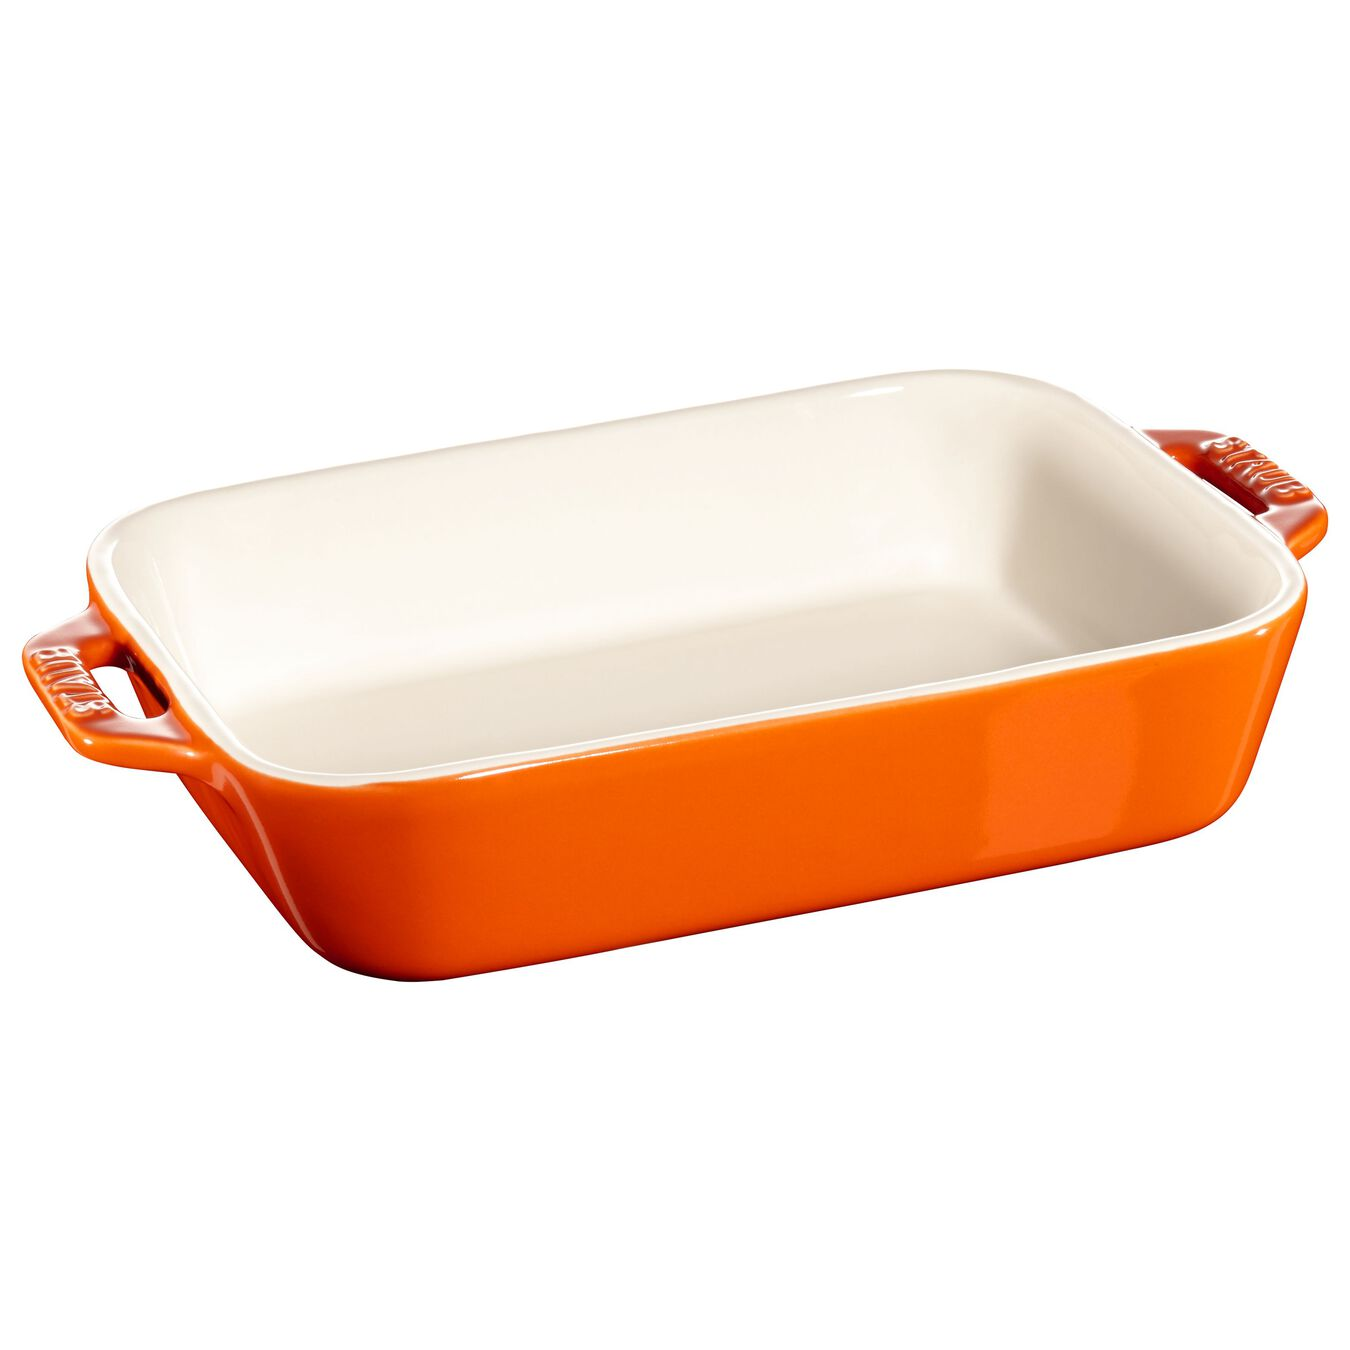 Ceramic rectangular Plat à four, Orange,,large 1